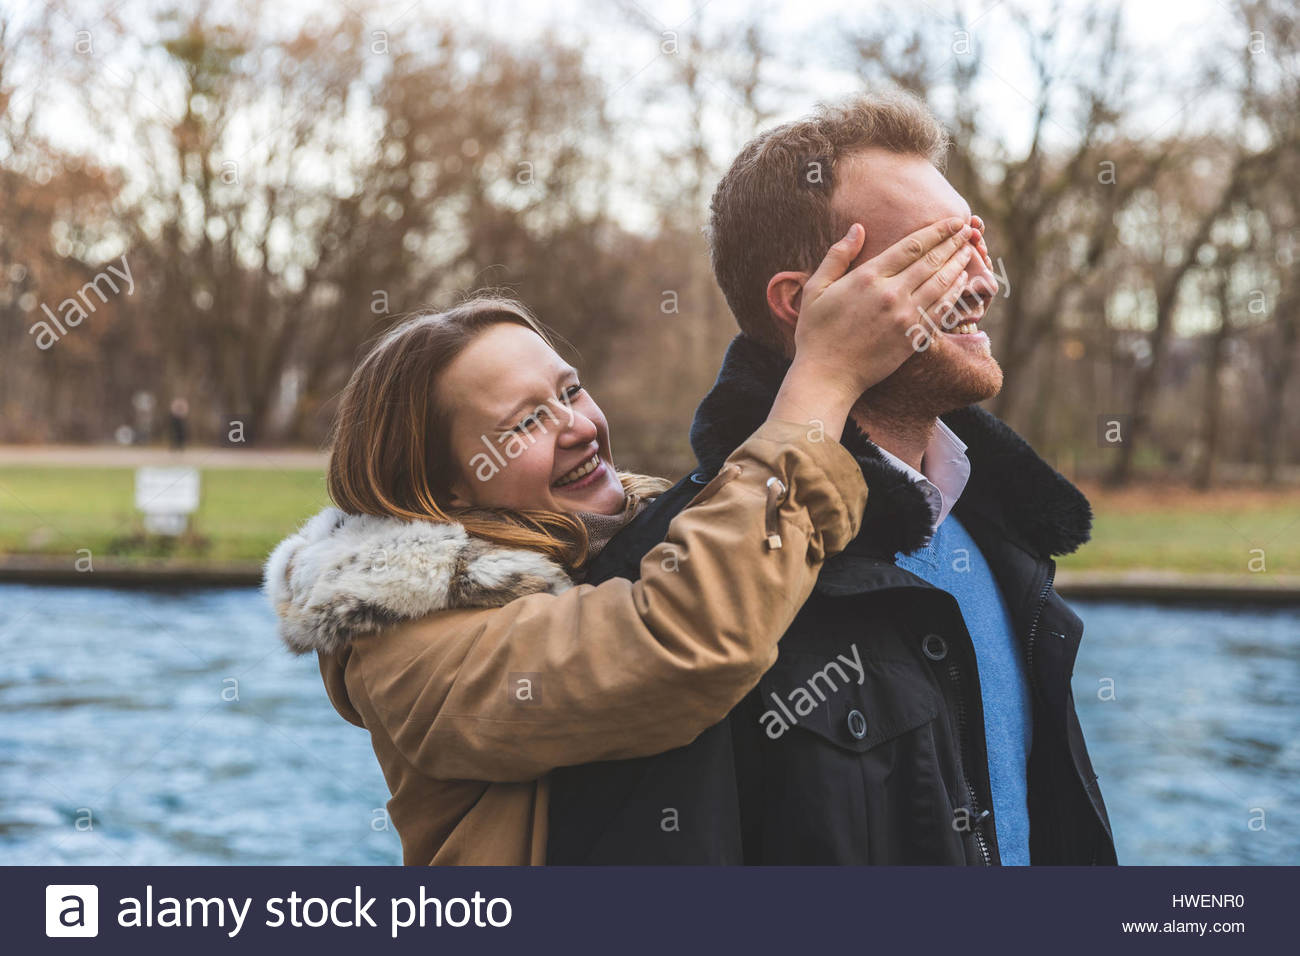 Young woman covering boyfriend's eyes on park riverside - Stock Image